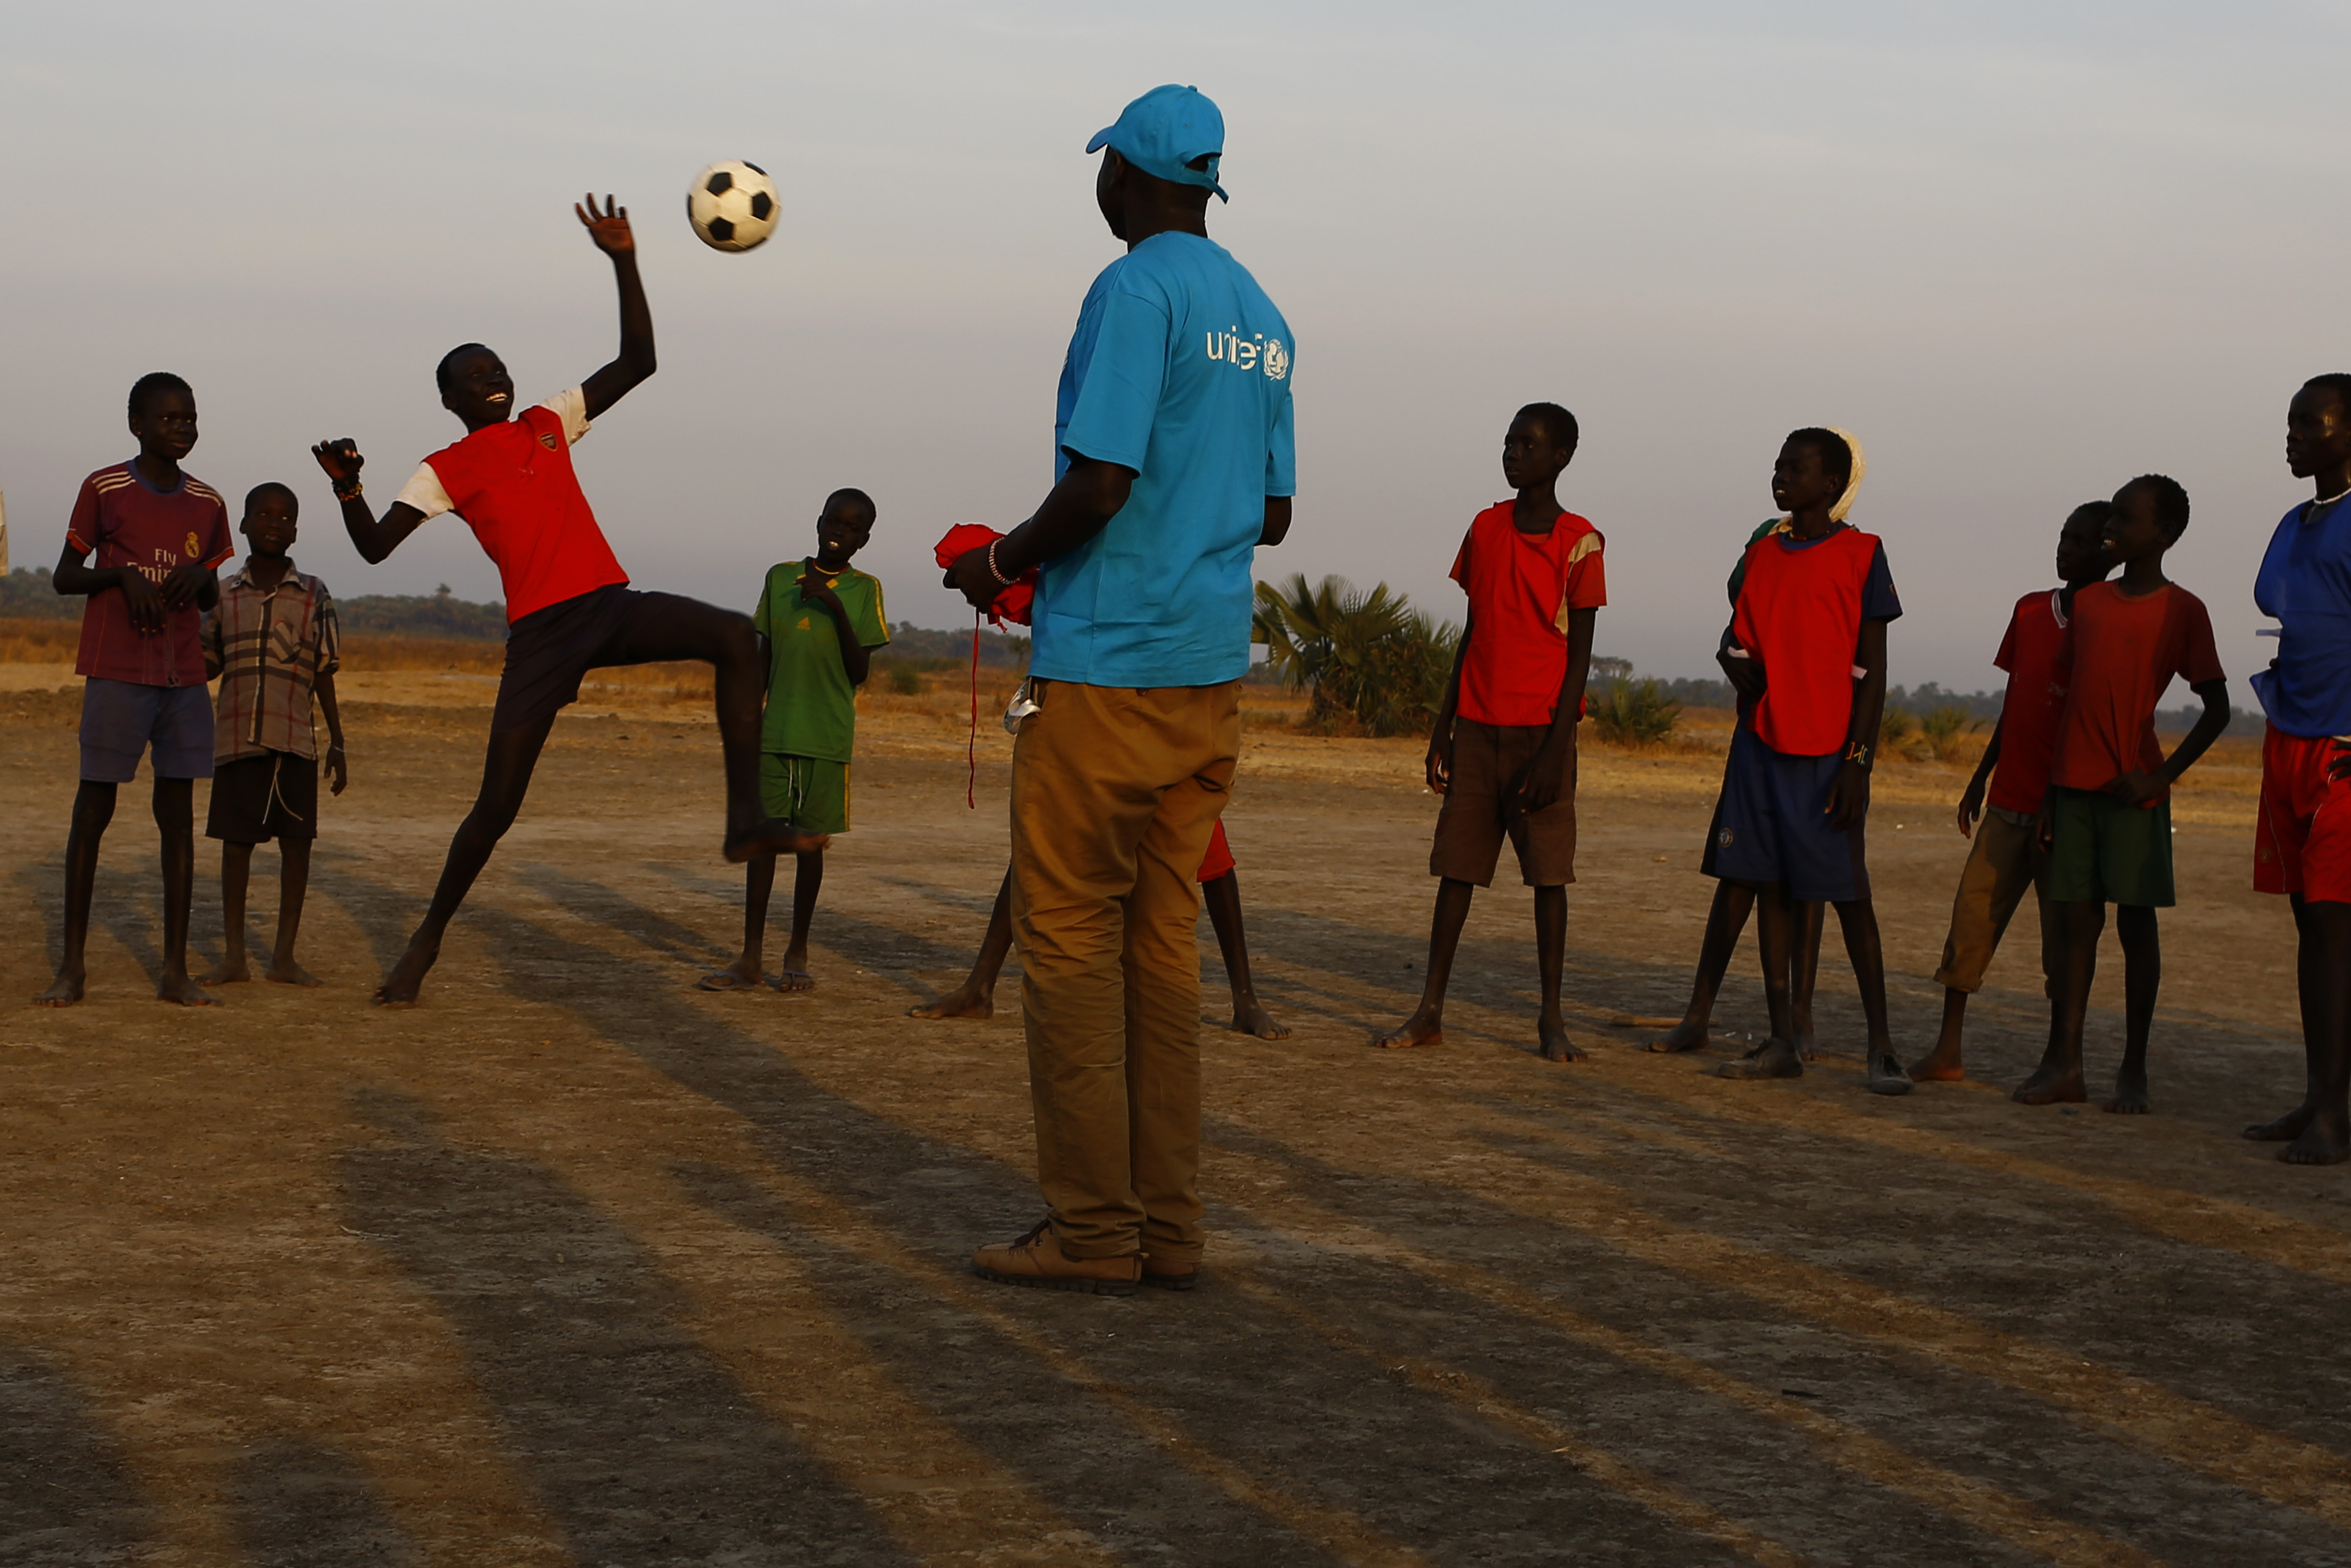 Children standing in a circle watch as a child kicks a football in the air, as a man in a UNICEF t-shirt in the middle looks on.